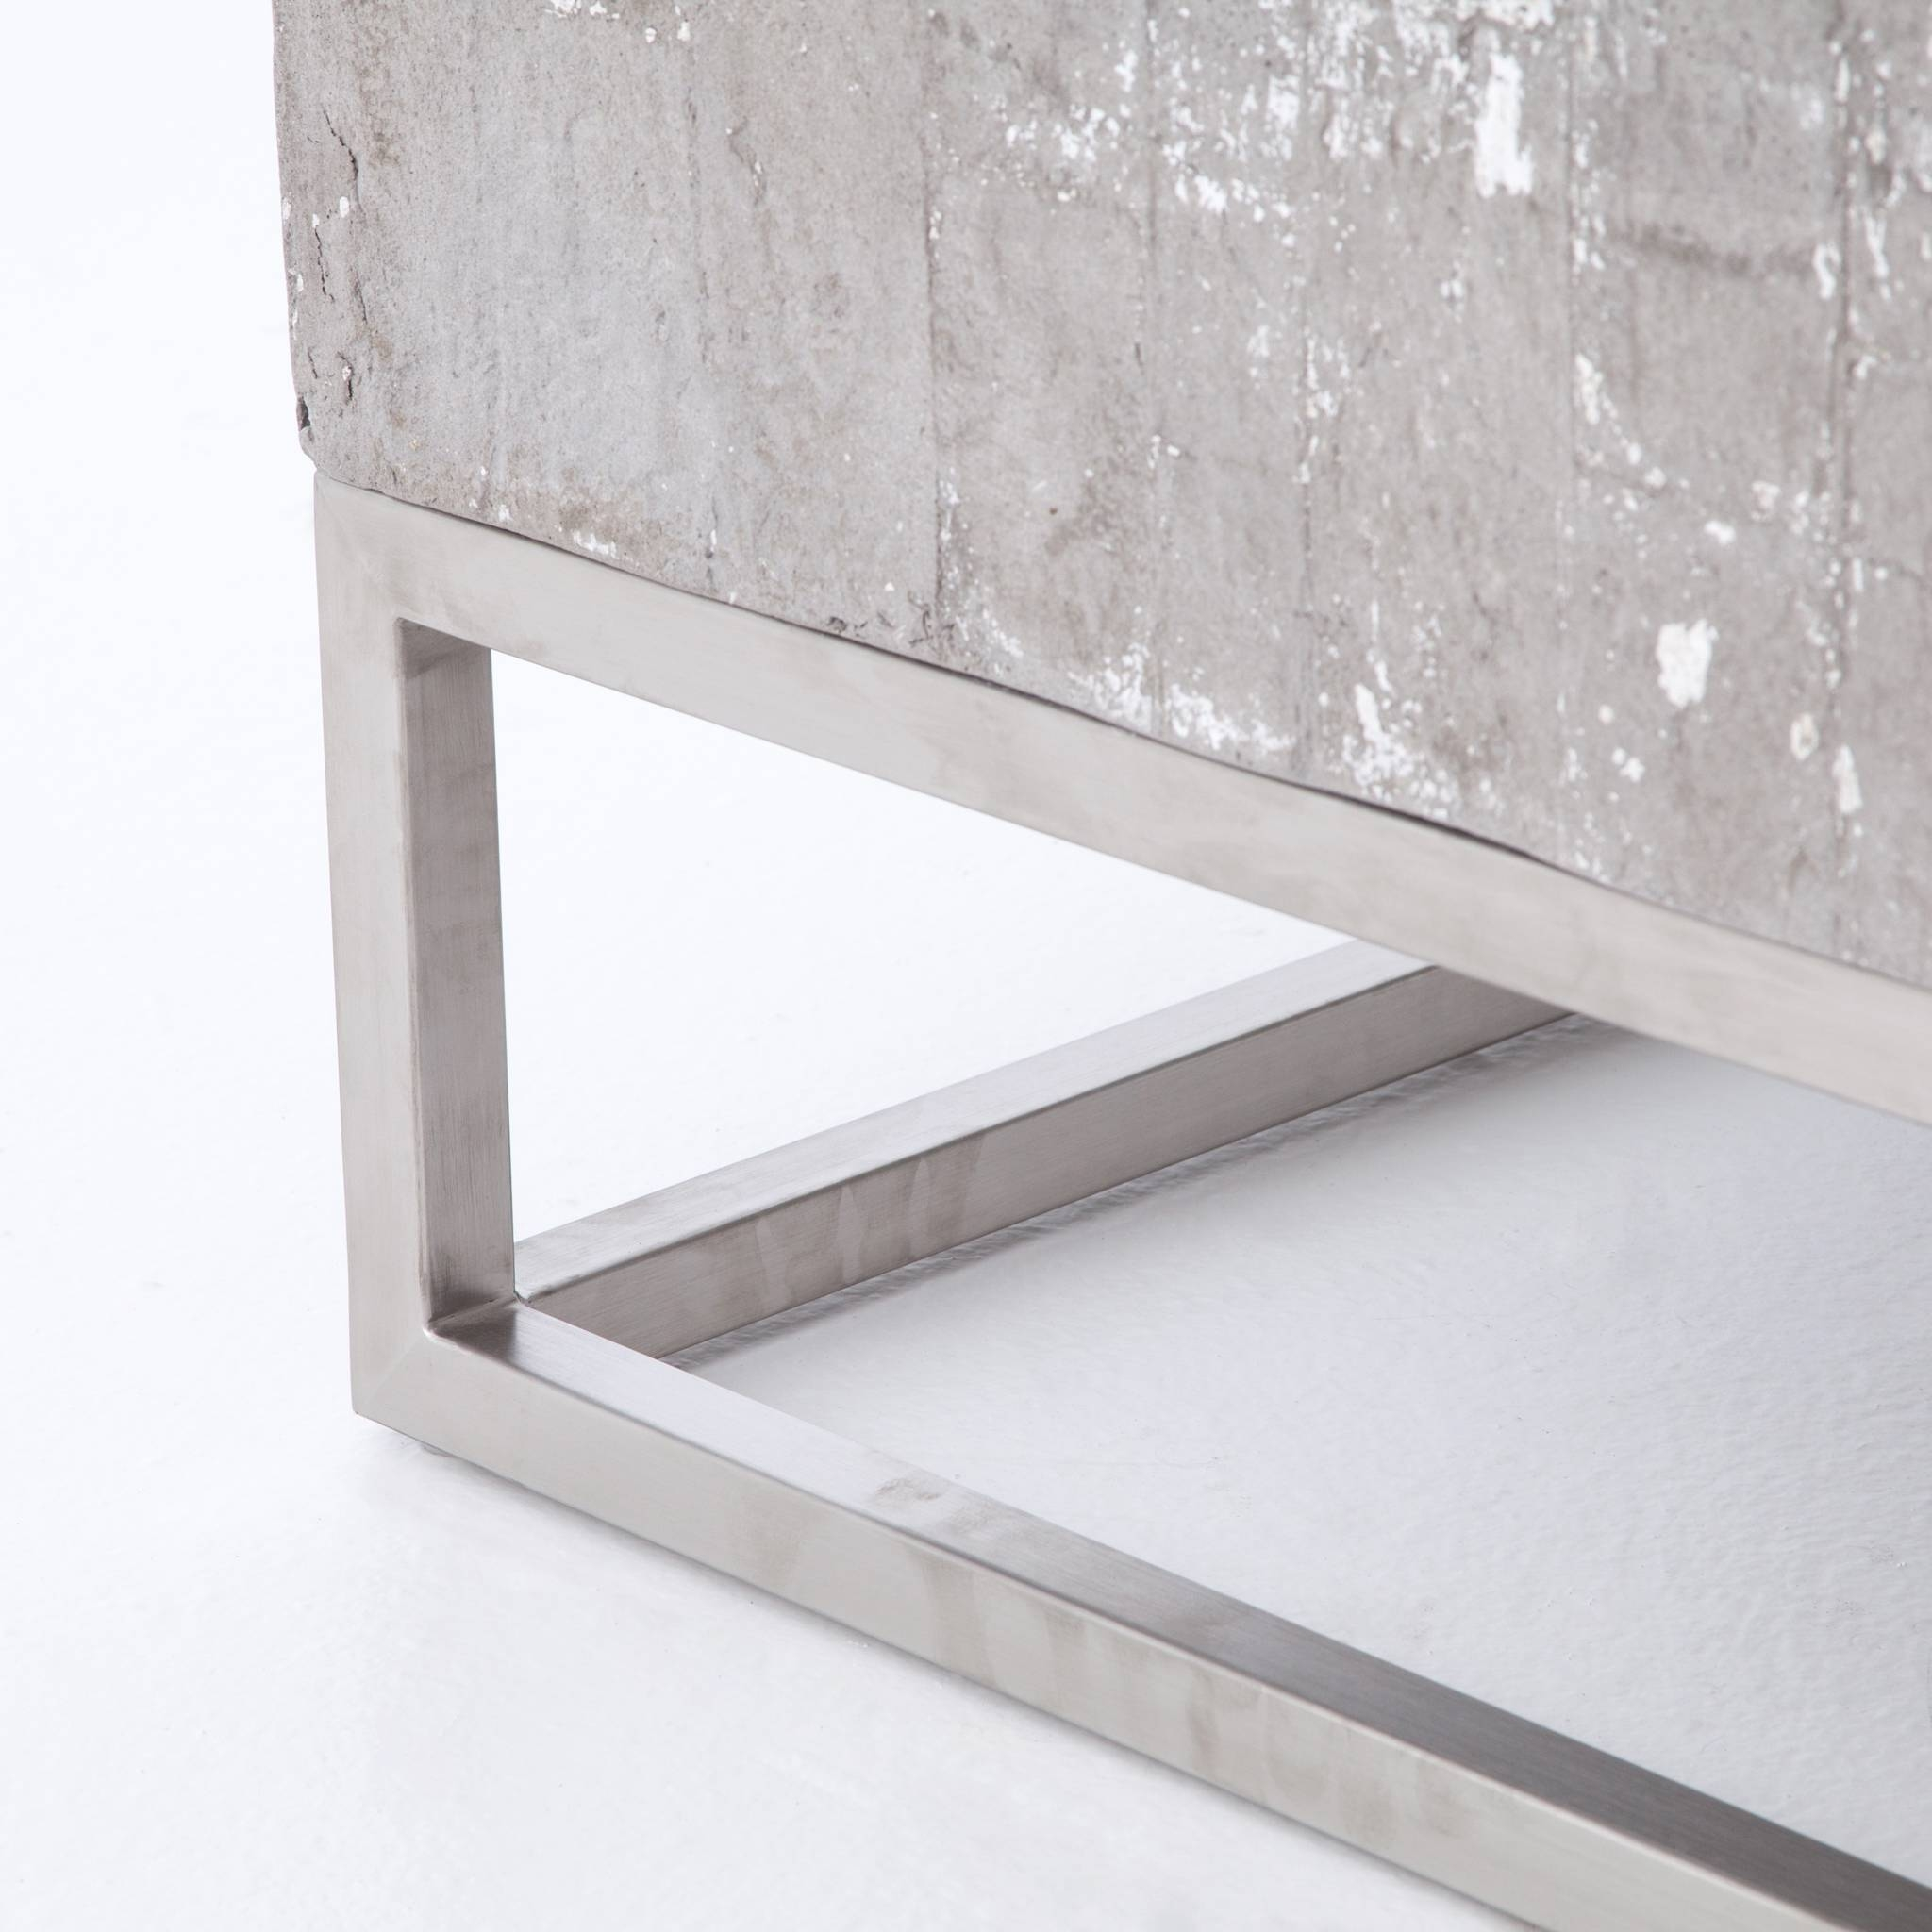 Concrete And Chrome Coffee Table | Industrial Home with regard to White And Chrome Coffee Tables (Image 8 of 30)